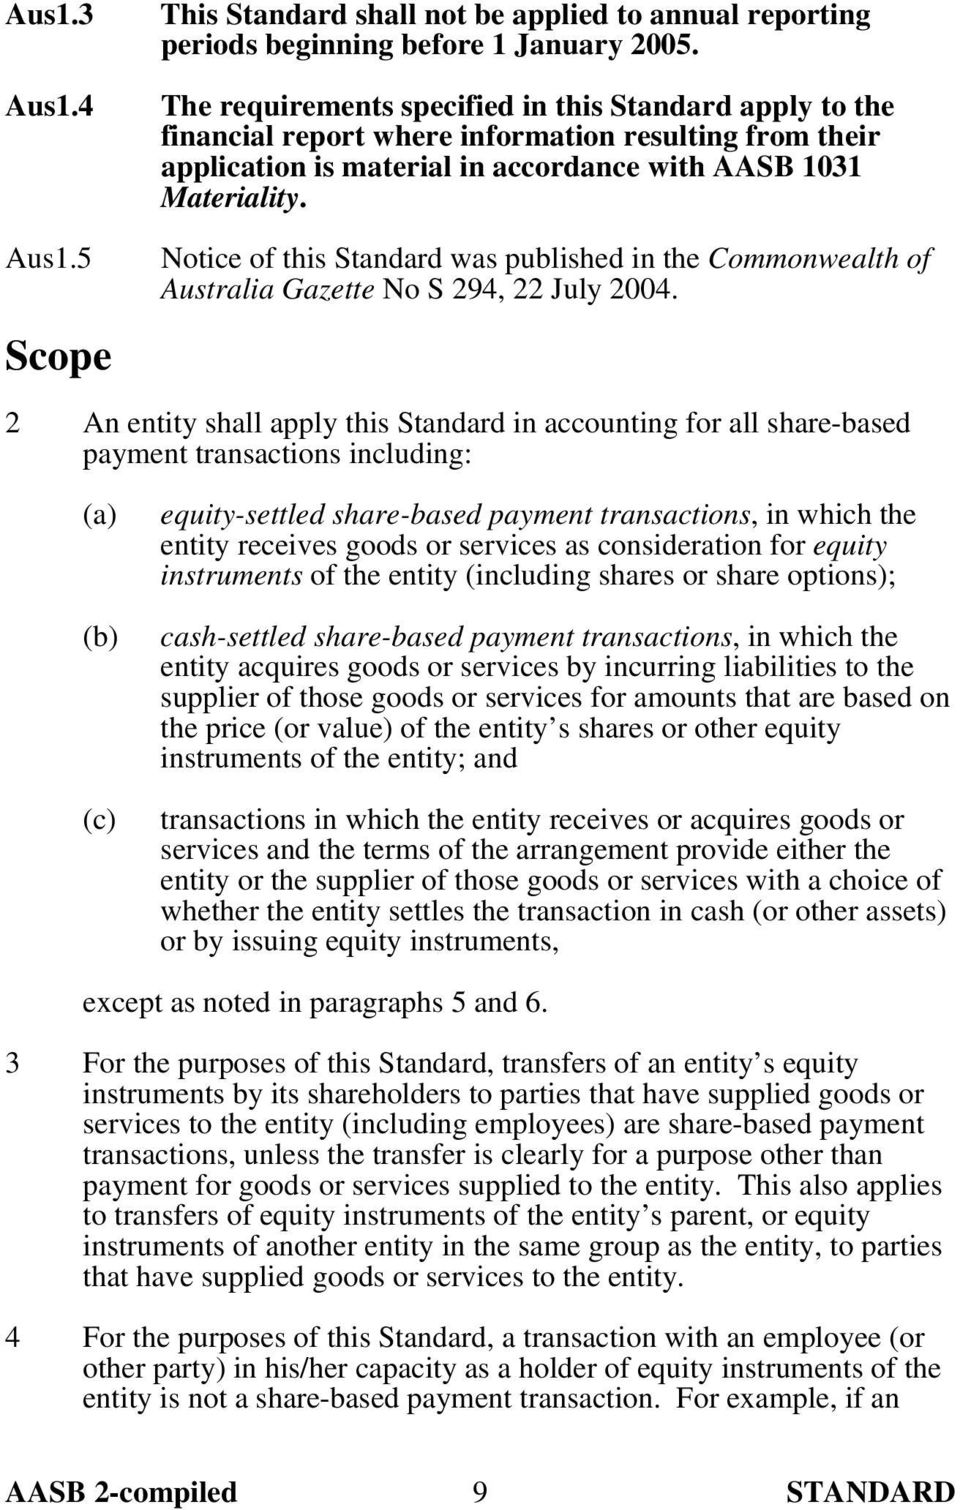 5 Scope Notice of this Standard was published in the Commonwealth of Australia Gazette No S 294, 22 July 2004.